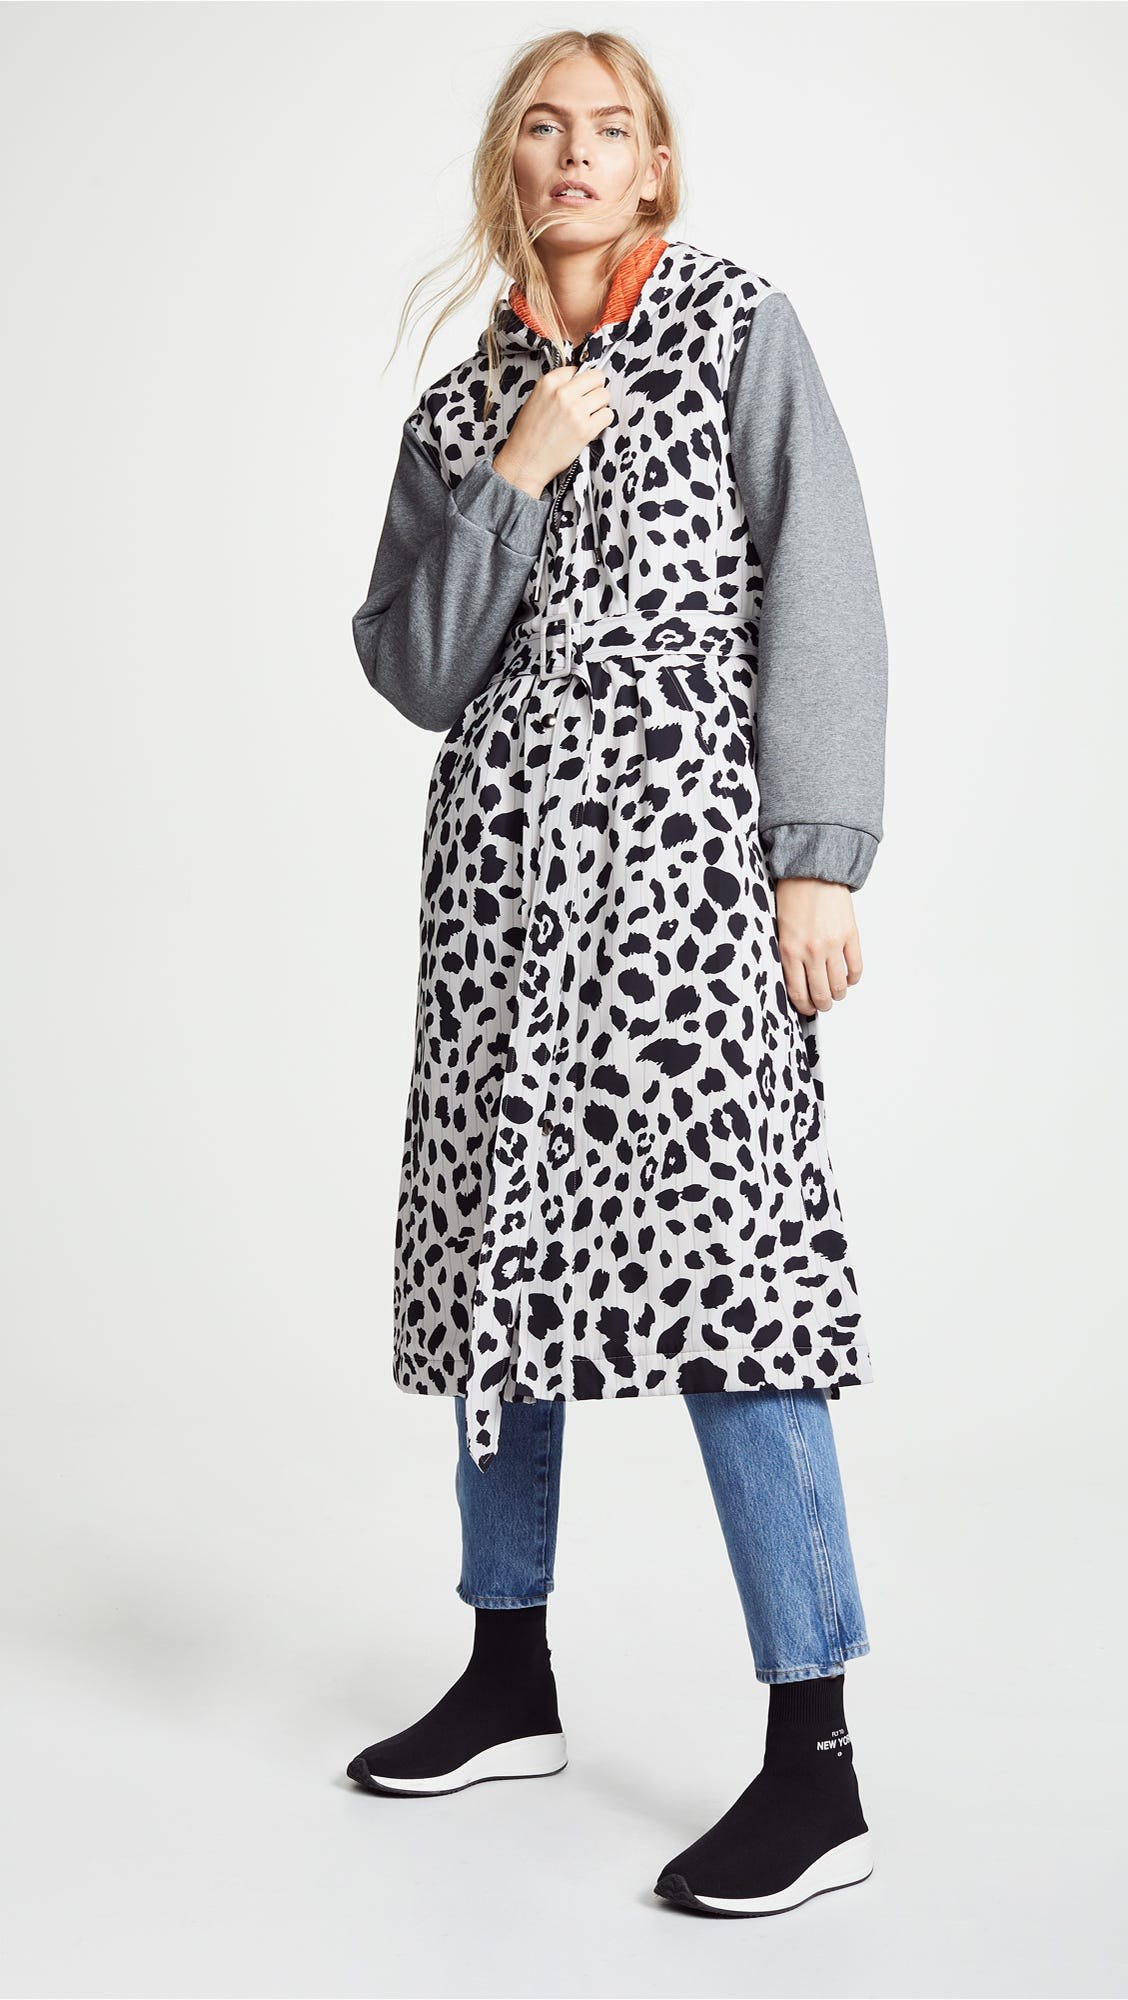 abc815357f Best Leopard Print Coats To Keep You Warm Winter 2018